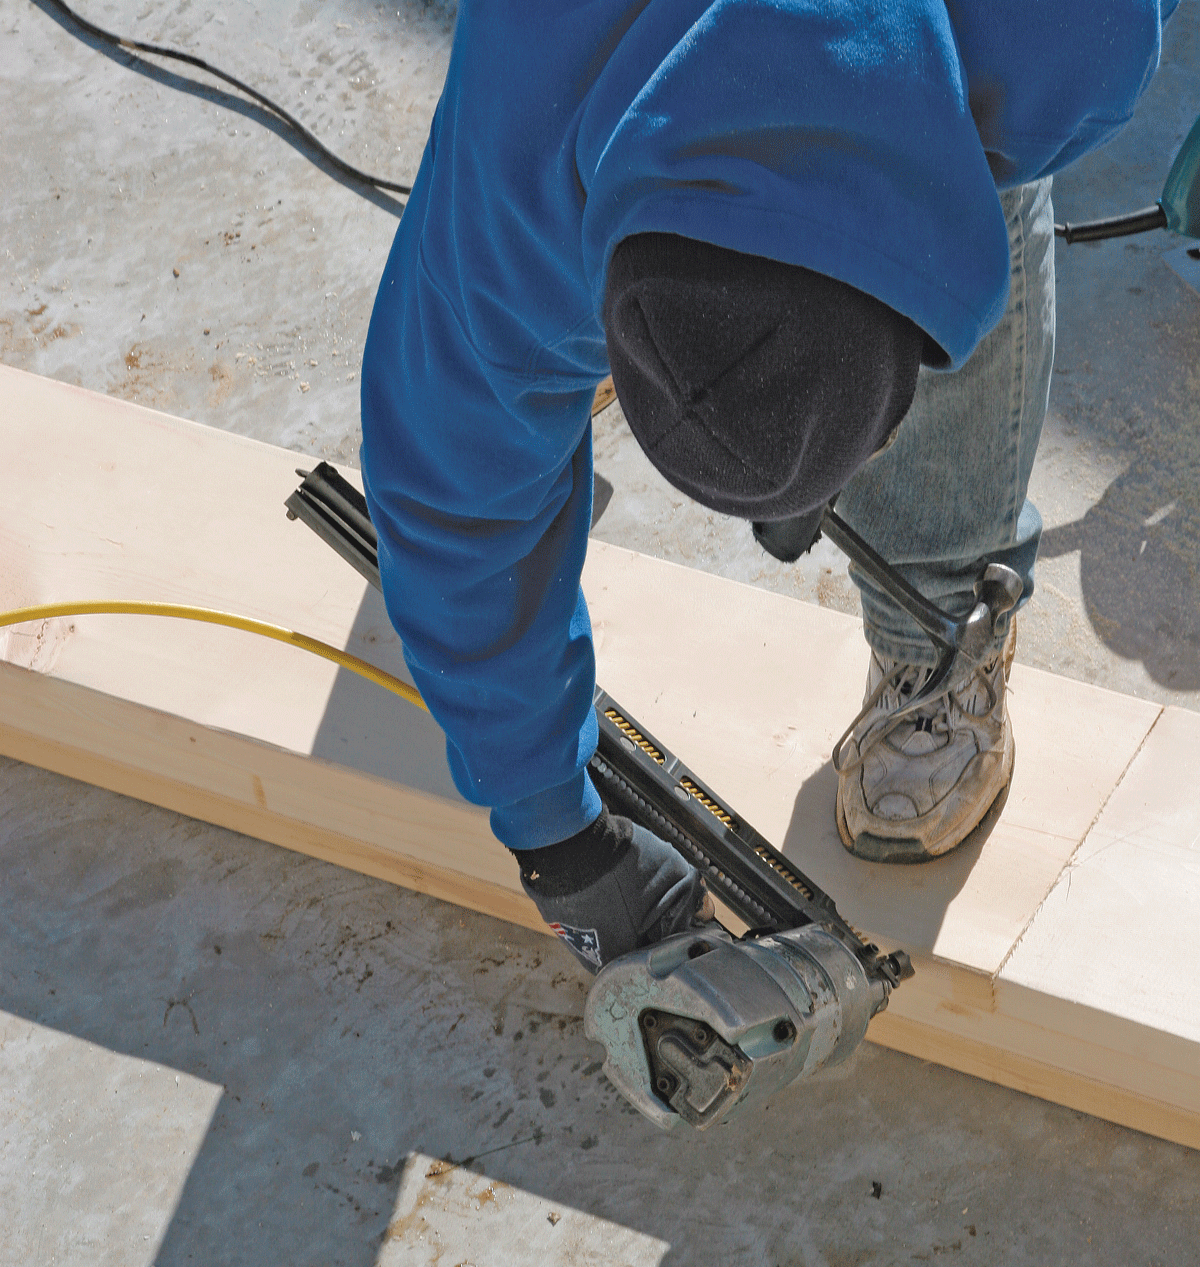 To align boards edge to edge, drive a toenail into the edge of the overhanging board, then pound the nail with a hammer until the board edges line up.